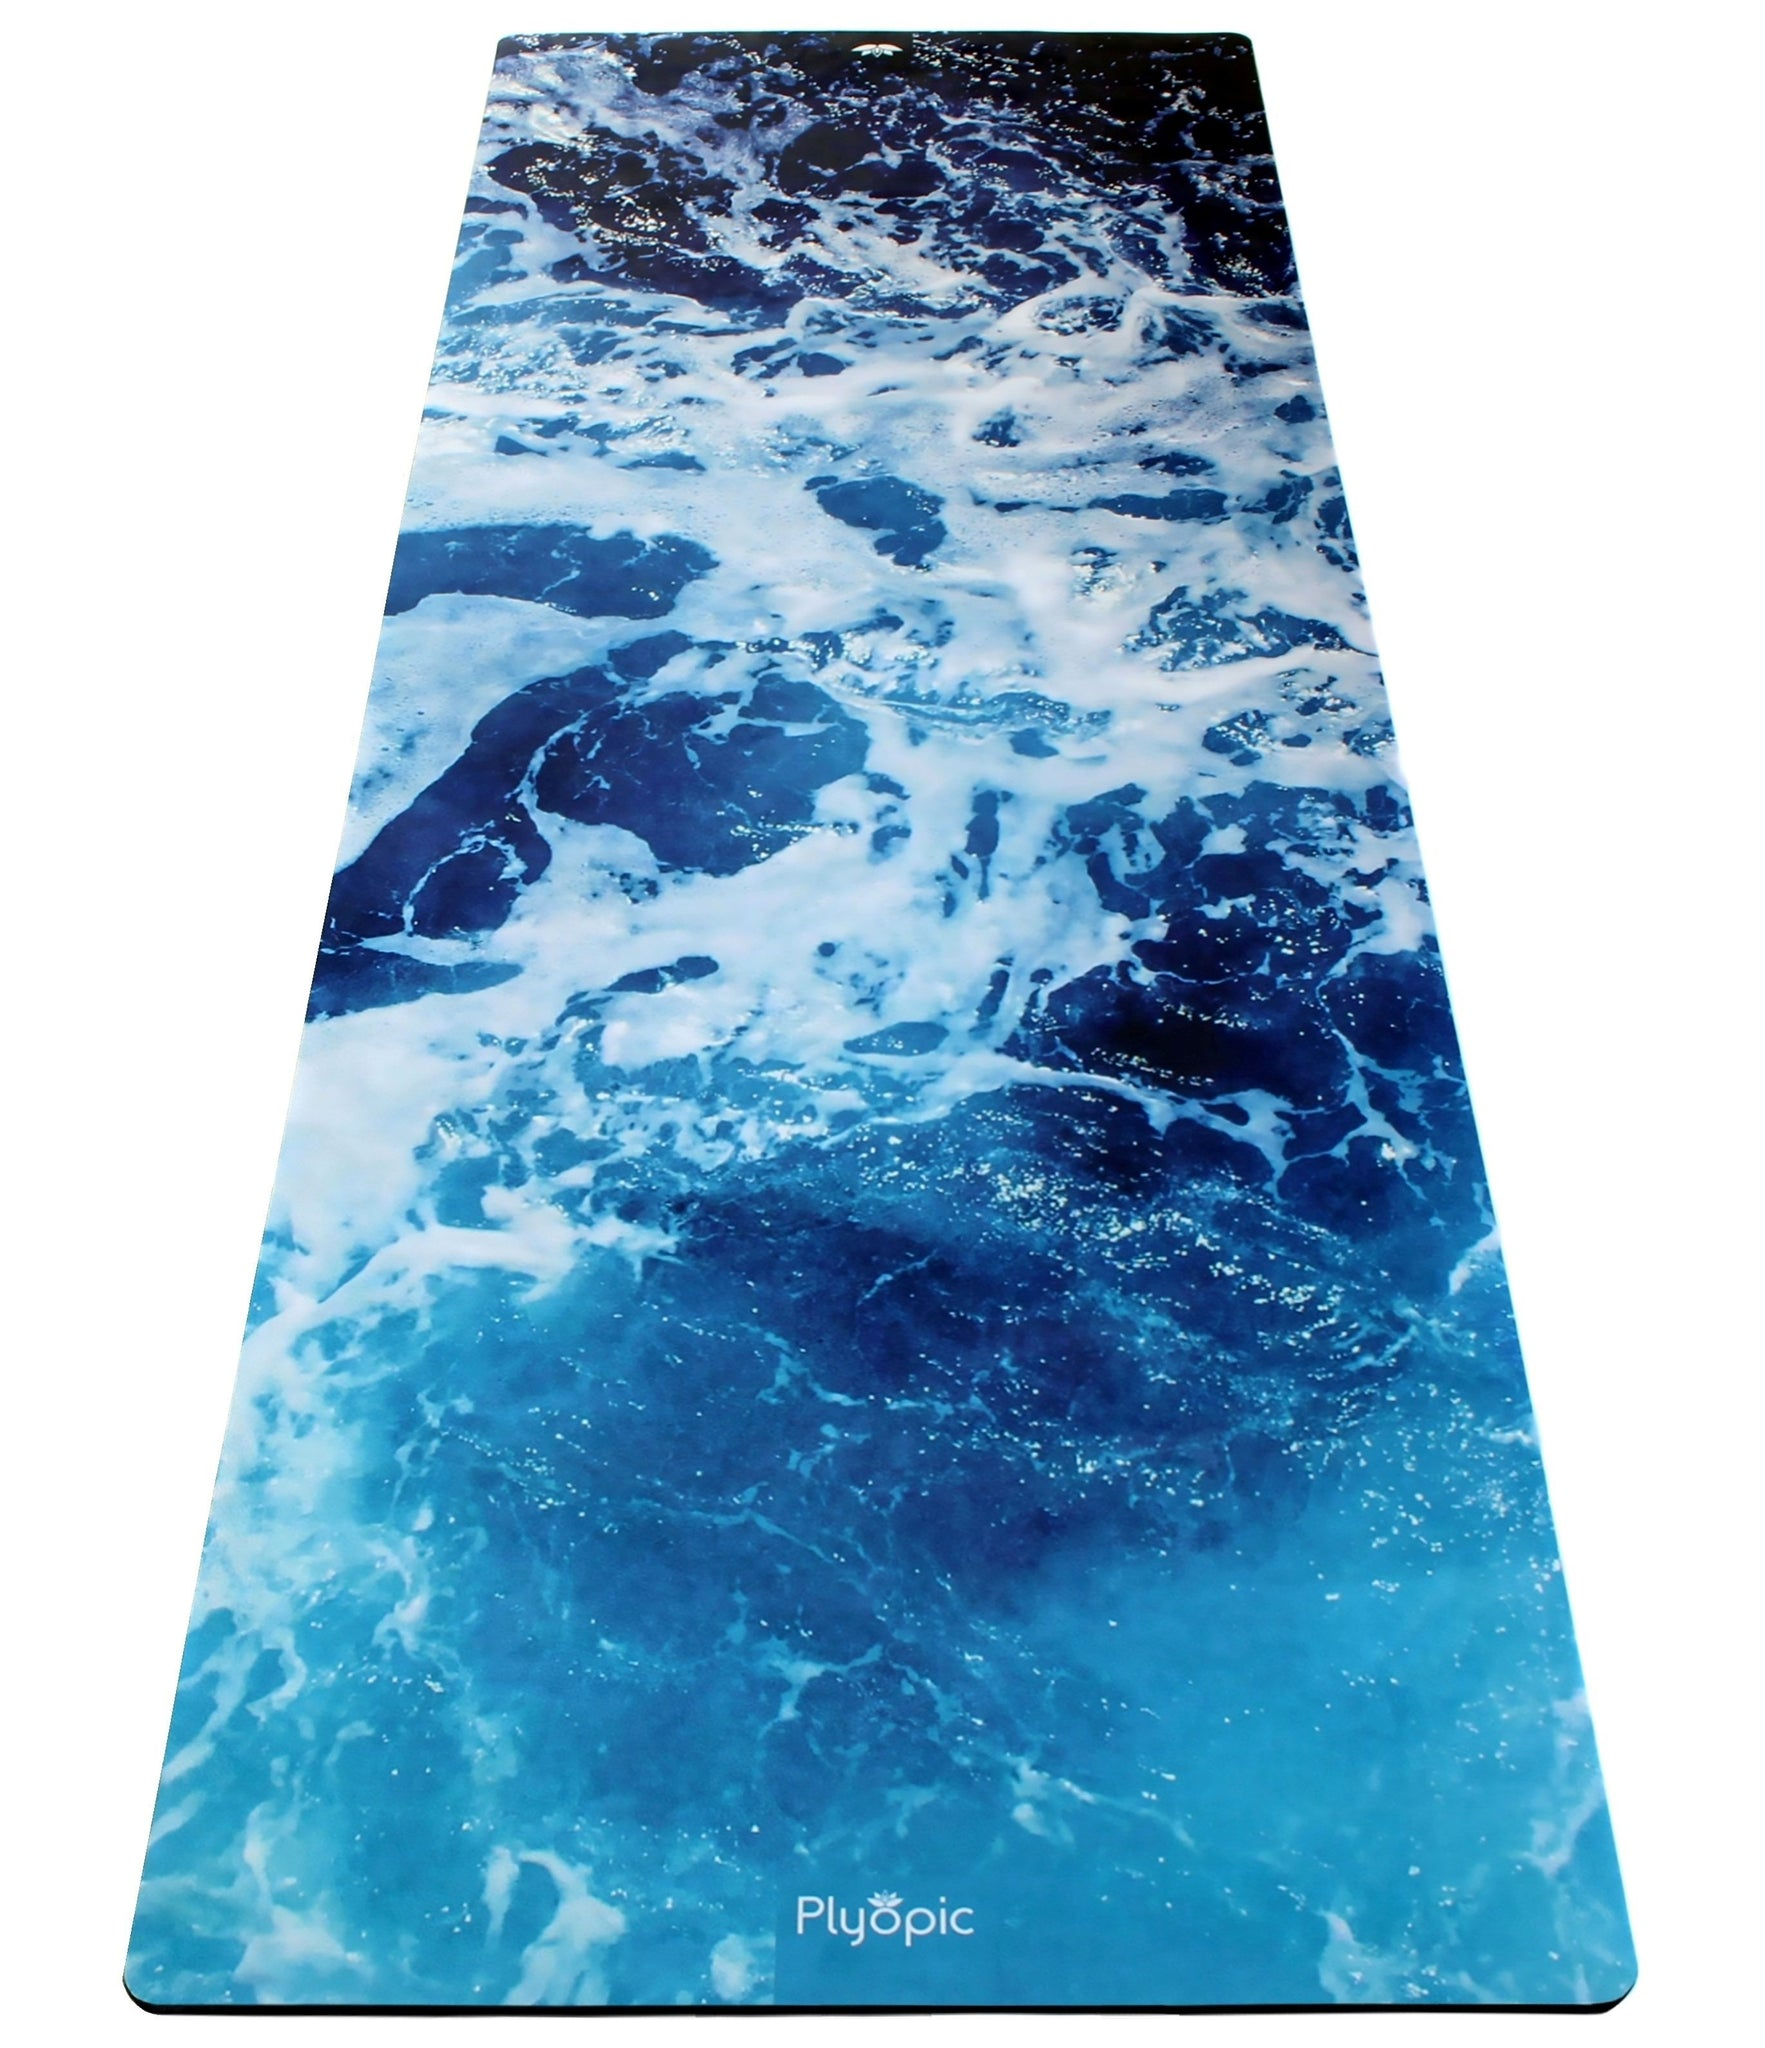 Plyopic-All In One Yoga Mat Pacific-Yoga Mat